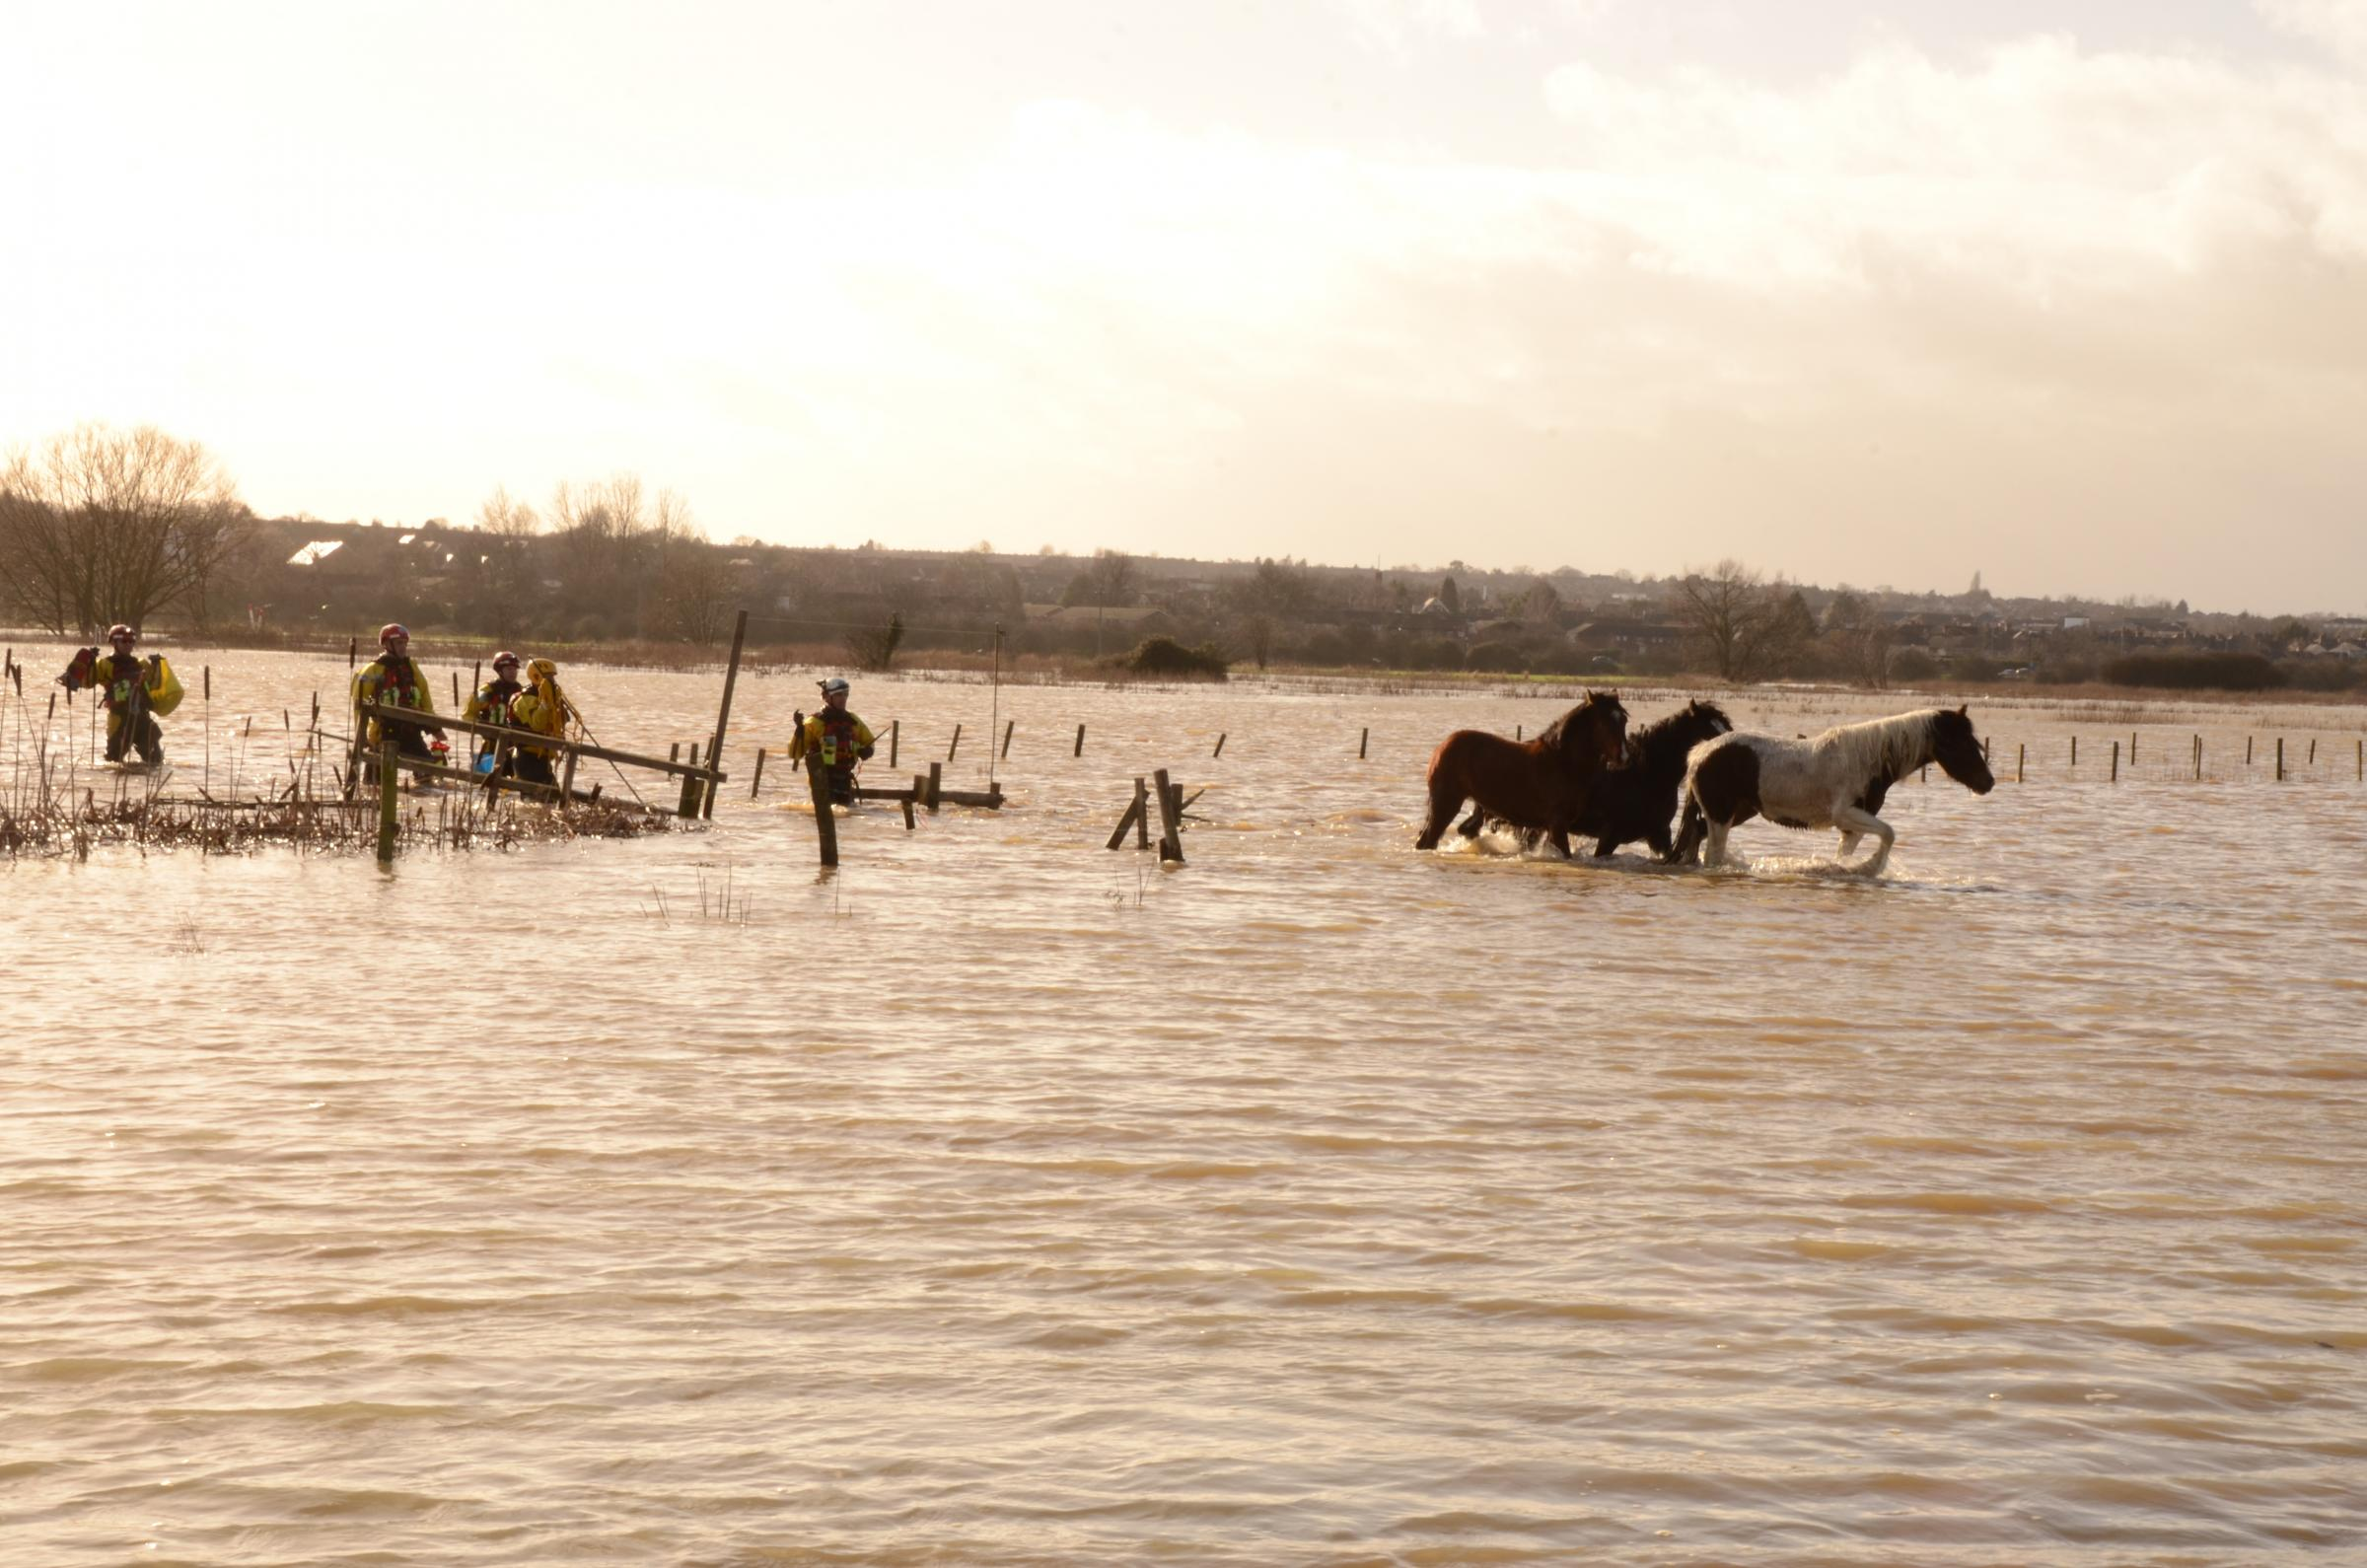 UPDATED: All seven horses saved from flooded land